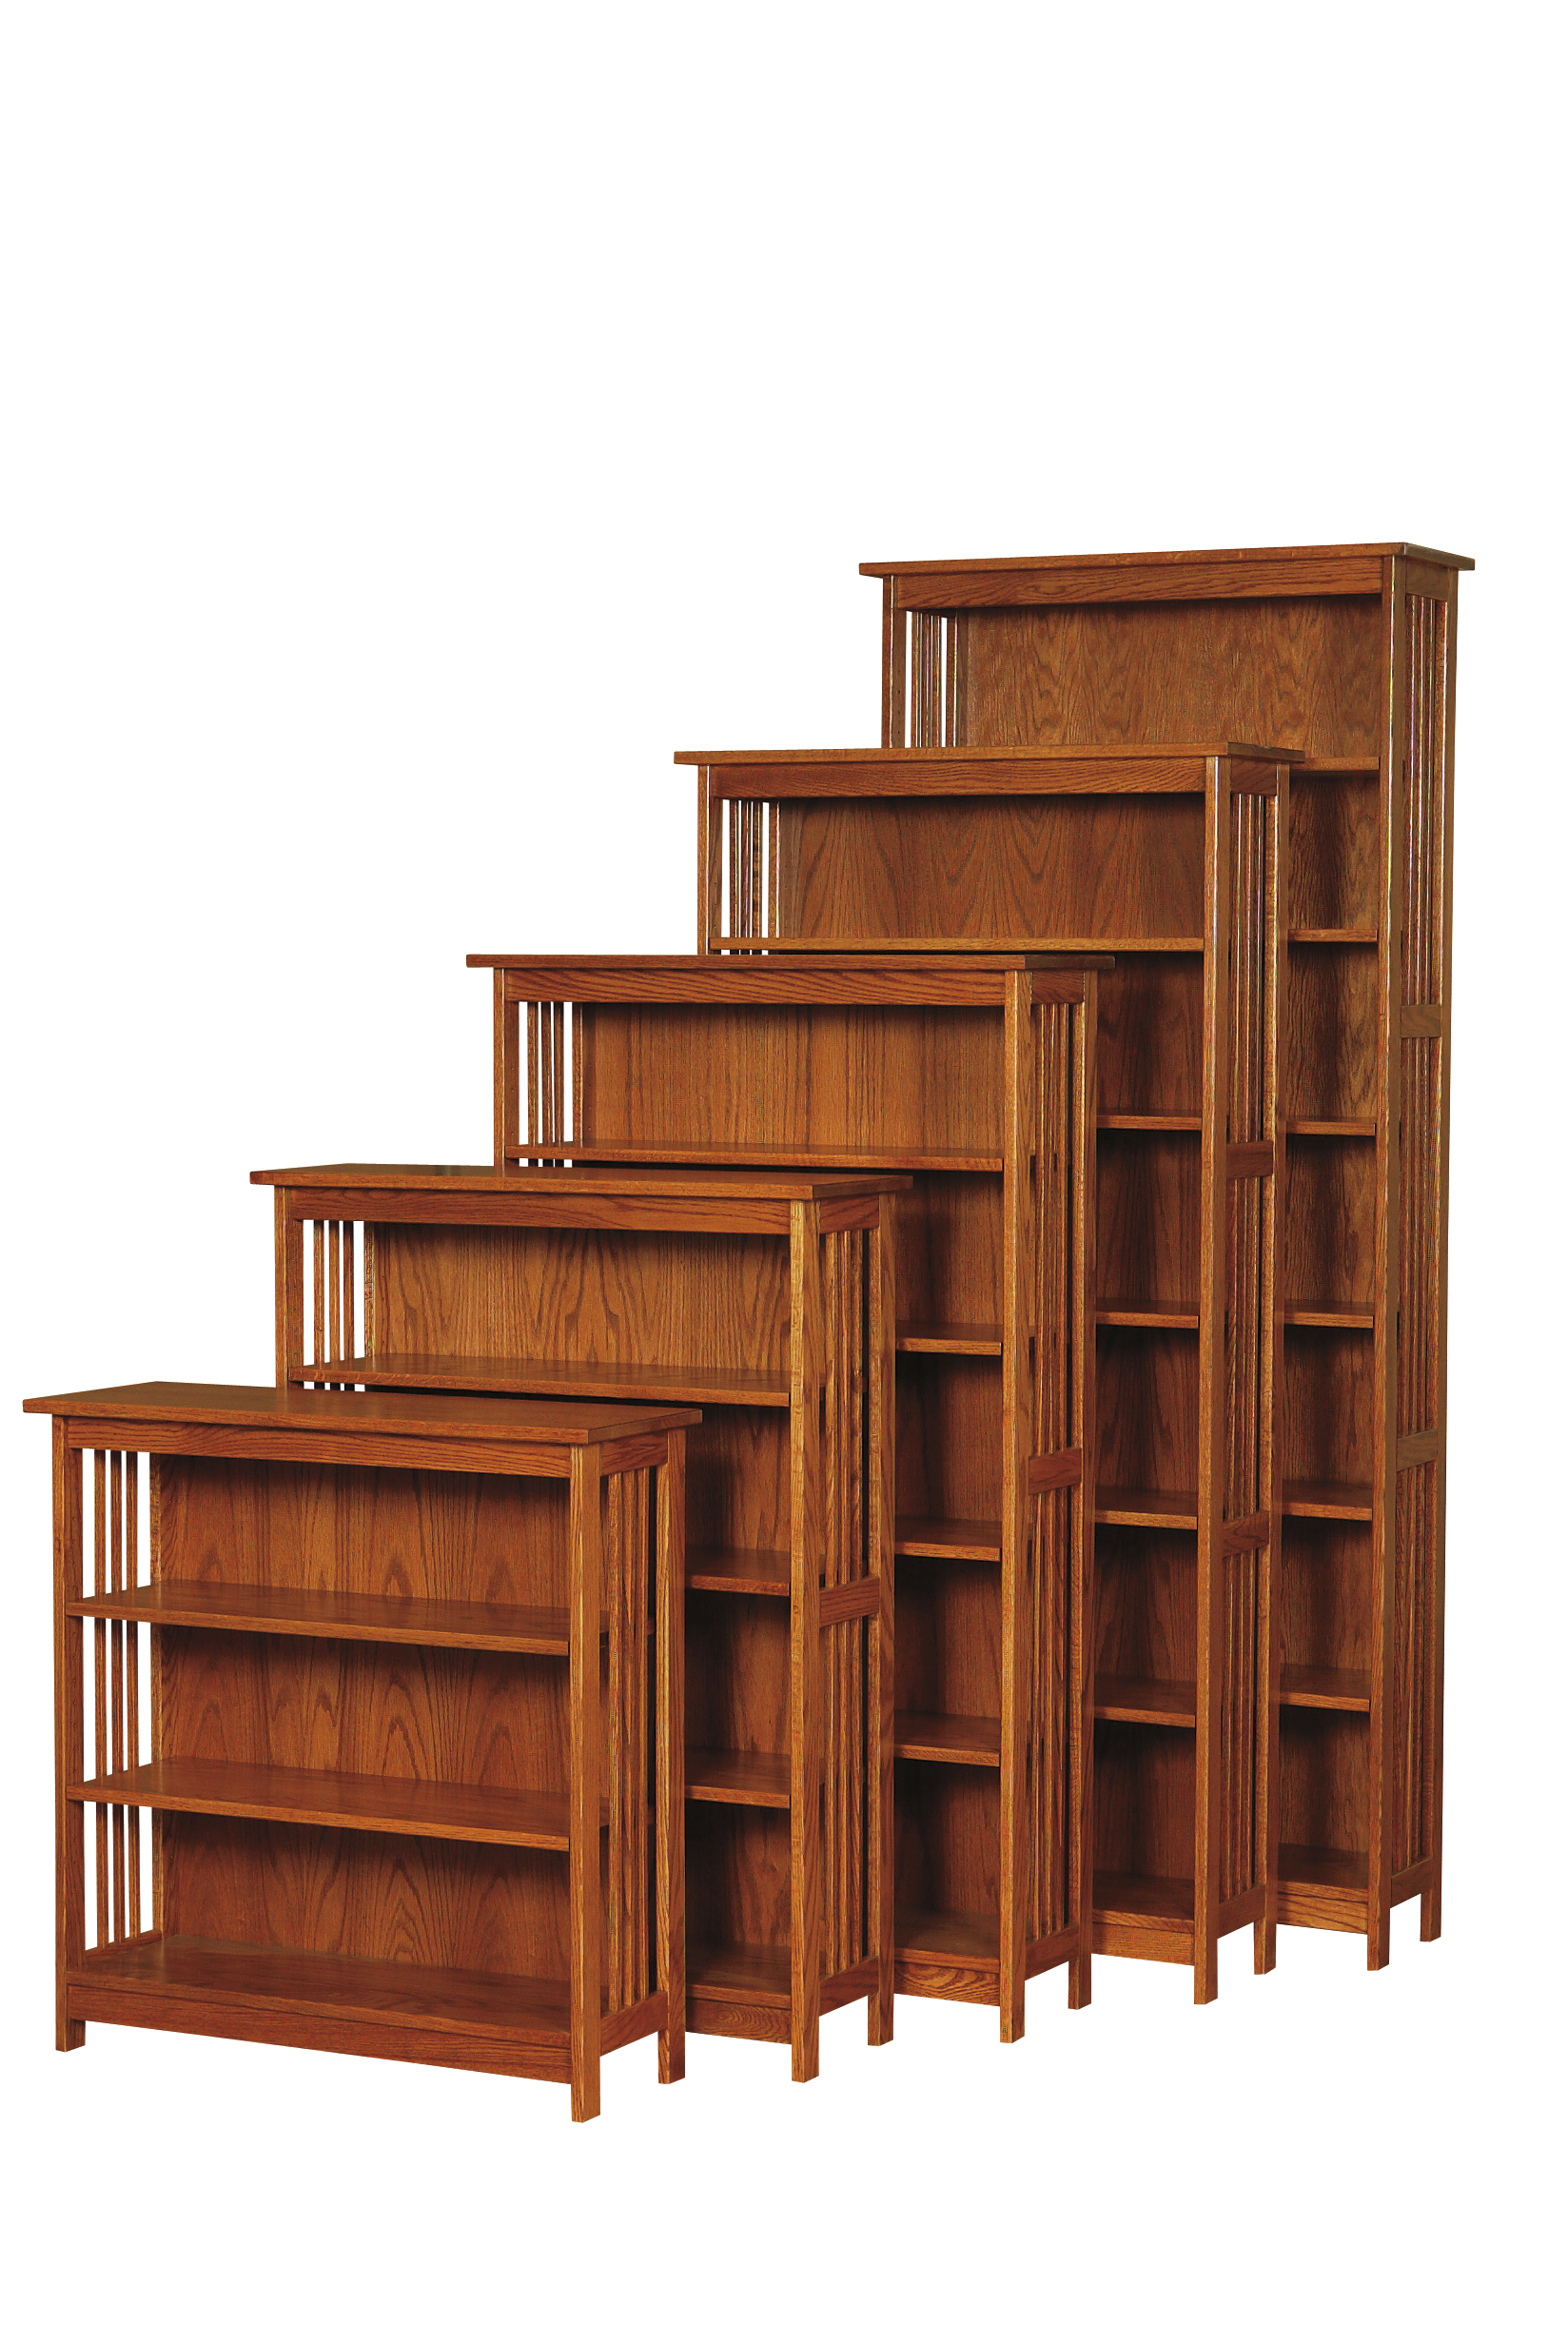 30W Country Mission Bookcase Amish Furniture Connections Amish Furniture Connections